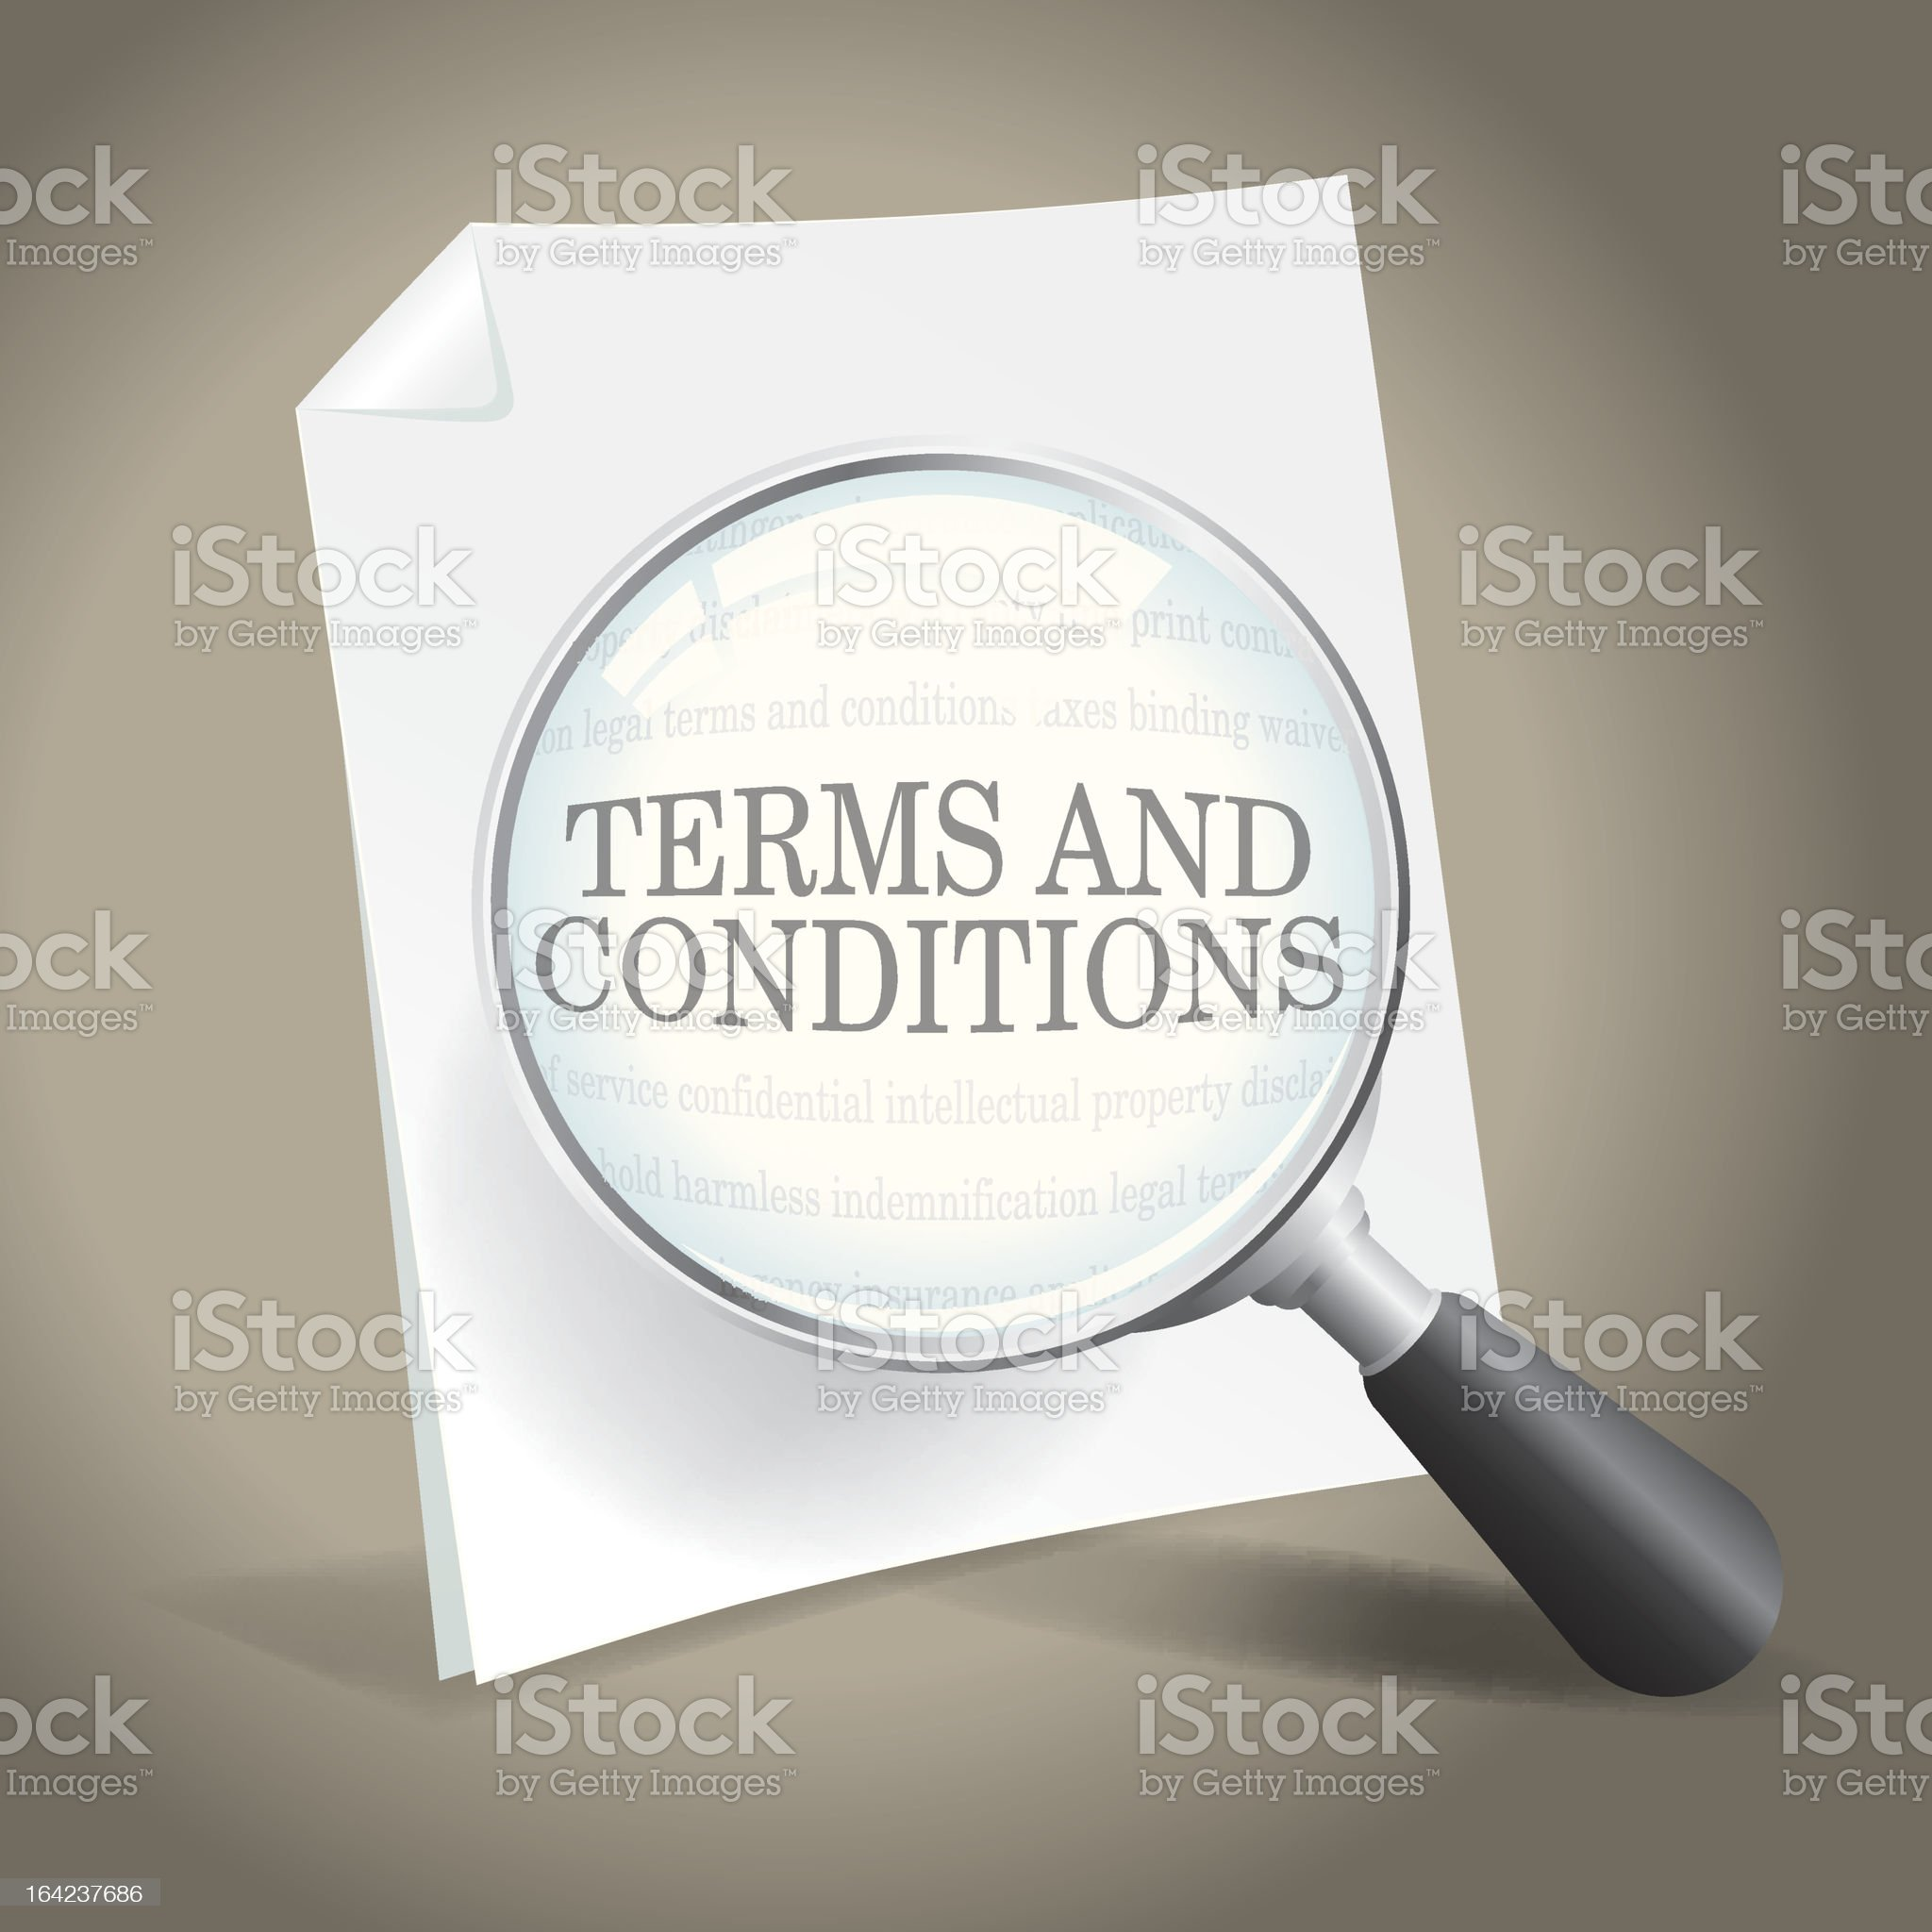 A photo of the terms and conditions with a magnifying glass royalty-free stock vector art